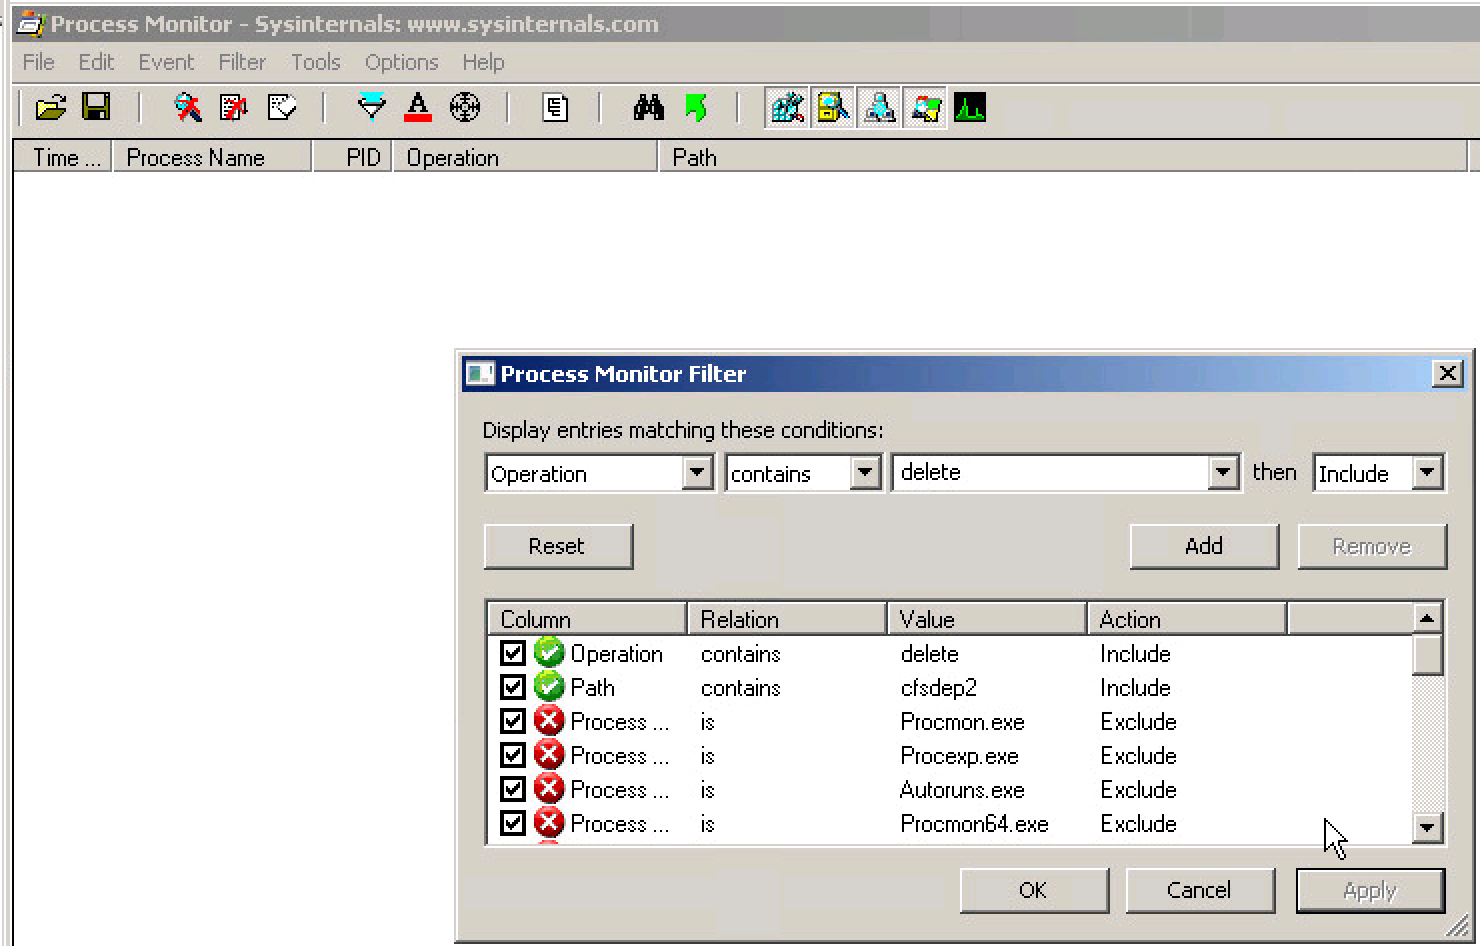 Silent Install of Citrix PVS Target Device software